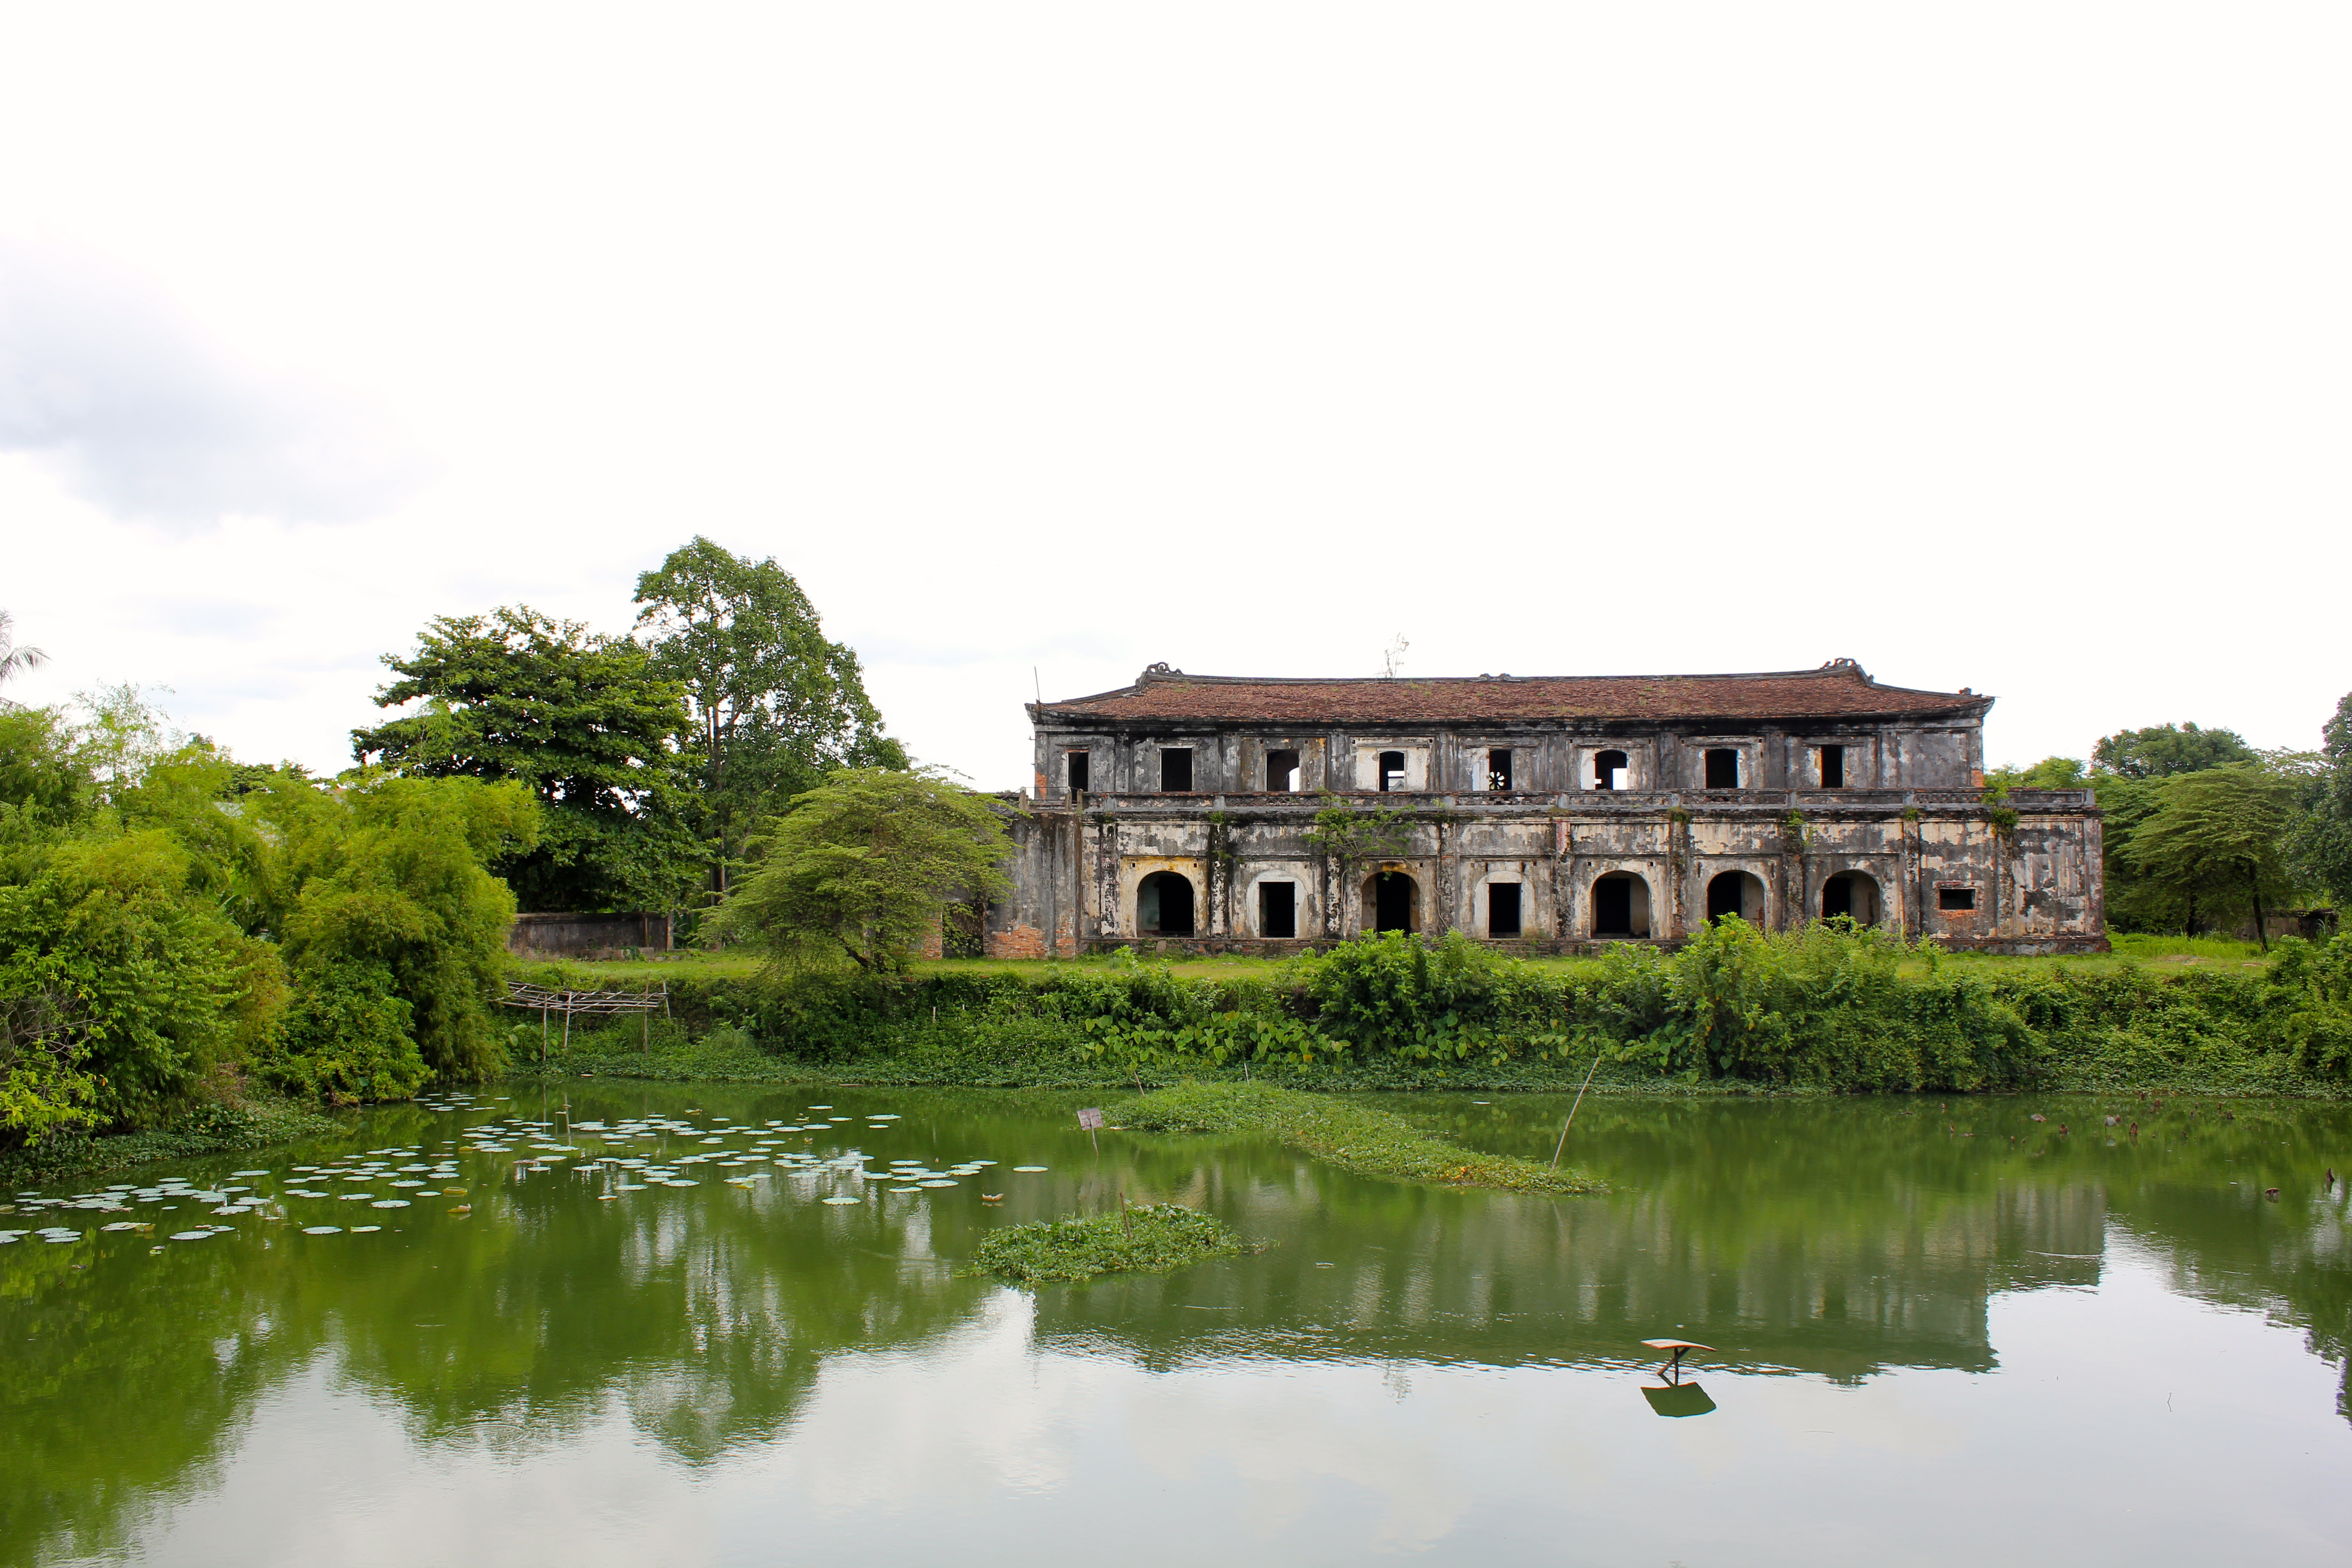 The former imperial capital of Hue came under heavy bombardment by the Americans during the Vietnam war; abandoned ruins stand as a reminder of the time © Nisha D'Souza